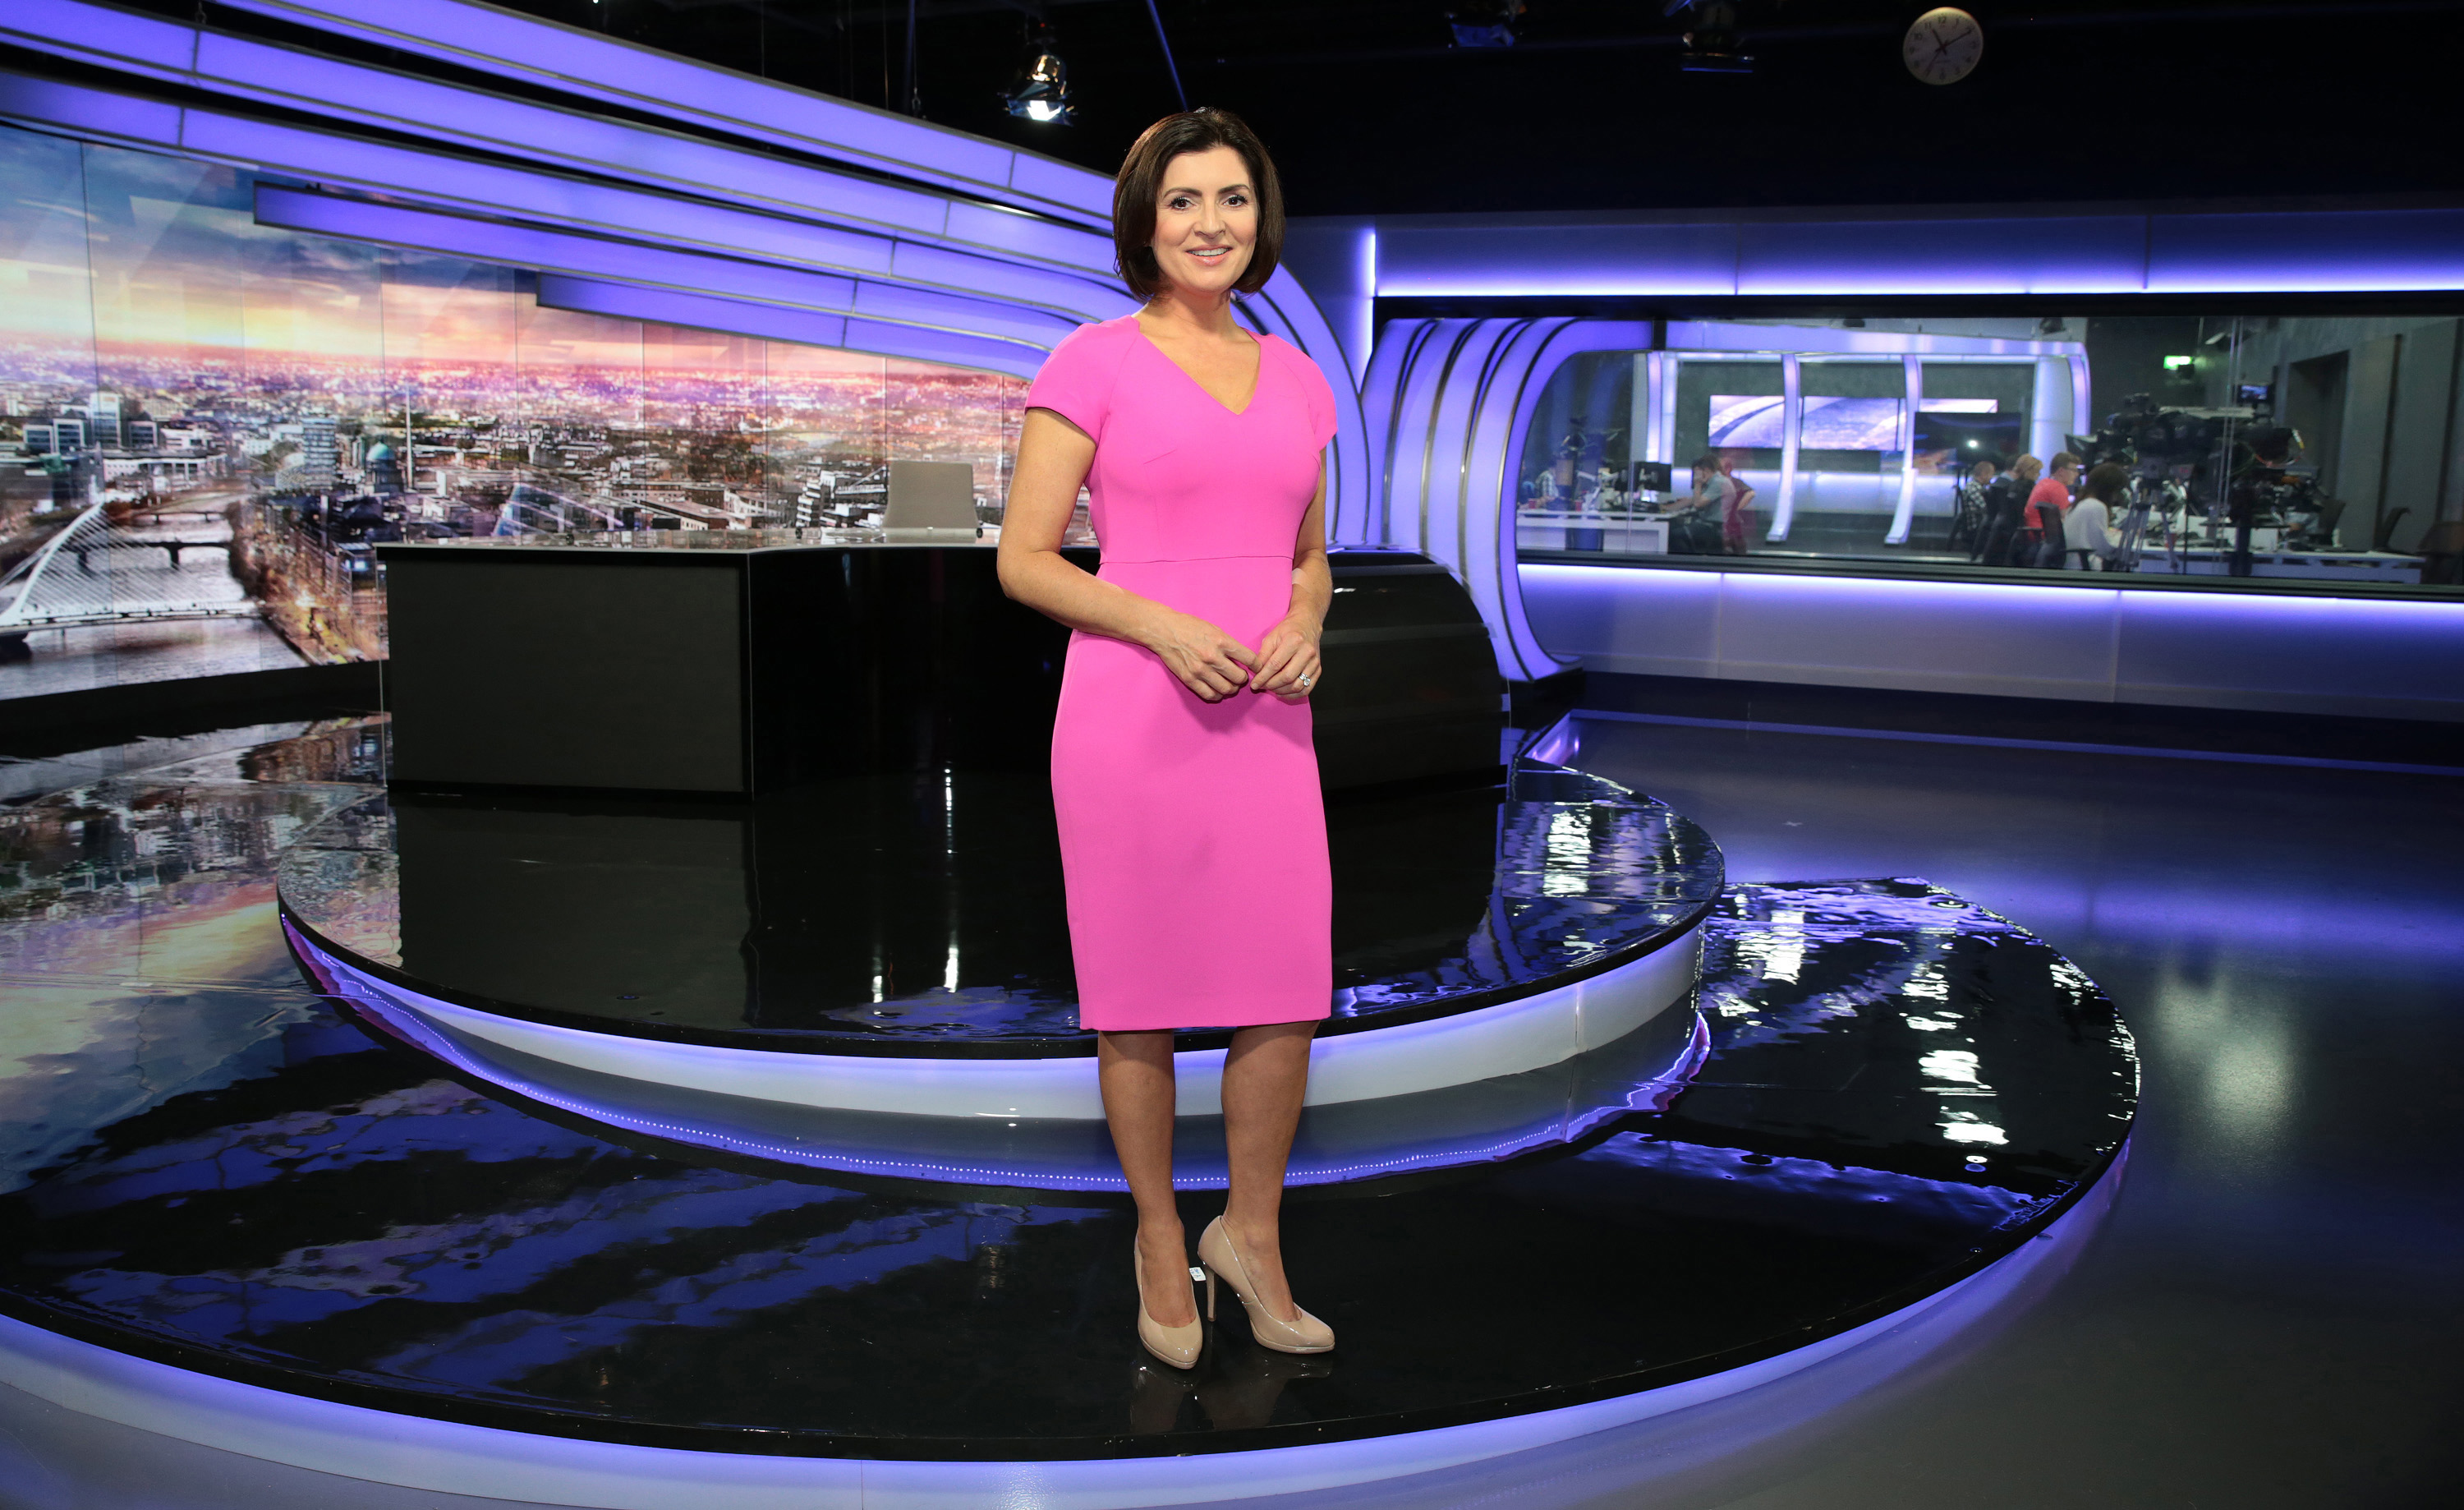 ncs_tv3-news-ireland-studio_0006